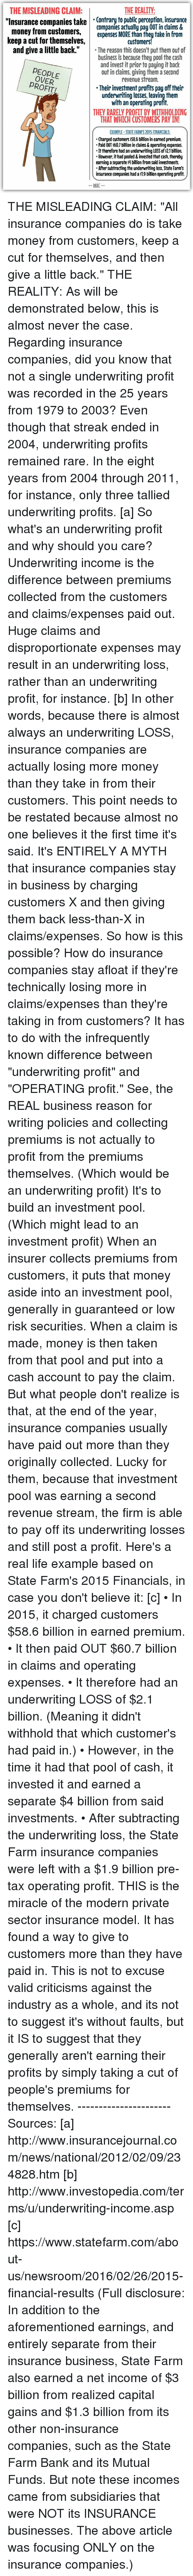 """Dank, Life, and Money: THE MISLEADING CLAIM:  THE REALITY  """"Insurance companies take  Contrary to public perception insurance  money from customers,  companies actually pay OUT in claims &  expenses MORE than they take in from  keep a cut for themselves,  customers!  and give a little back  The reason this doesn't put them out of  business is because they pool the cash  and invest it prior to paying it back  outin claims, giving them a second  OVER  revenue stream.  Their investment profits pay off their  underwriting losses, leaving them  with an operating profit.  THAT WHICH CUSTOMERS PAY IN!  exAMPLE-STATE FARMS 2015 FINANCIALS:  Charged customers $58.6 billion in earned premium.  Paid OUT $60.7 billion in claims& operating expenses.  therefore had an underwriting LOSS of$21 billion.  However, it had pooled& invested that cash, thereby  earning a separate $4 billion from said investments.  After subtracting the underwriting loss. State Farm's  insurance companies had a $1.9 billion operating profit.  WAC THE MISLEADING CLAIM: """"All insurance companies do is take money from customers, keep a cut for themselves, and then give a little back.""""  THE REALITY: As will be demonstrated below, this is almost never the case.   Regarding insurance companies, did you know that not a single underwriting profit was recorded in the 25 years from 1979 to 2003? Even though that streak ended in 2004, underwriting profits remained rare. In the eight years from 2004 through 2011, for instance, only three tallied underwriting profits. [a]  So what's an underwriting profit and why should you care?  Underwriting income is the difference between premiums collected from the customers and claims/expenses paid out. Huge claims and disproportionate expenses may result in an underwriting loss, rather than an underwriting profit, for instance. [b] In other words, because there is almost always an underwriting LOSS, insurance companies are actually losing more money than they take in from their """